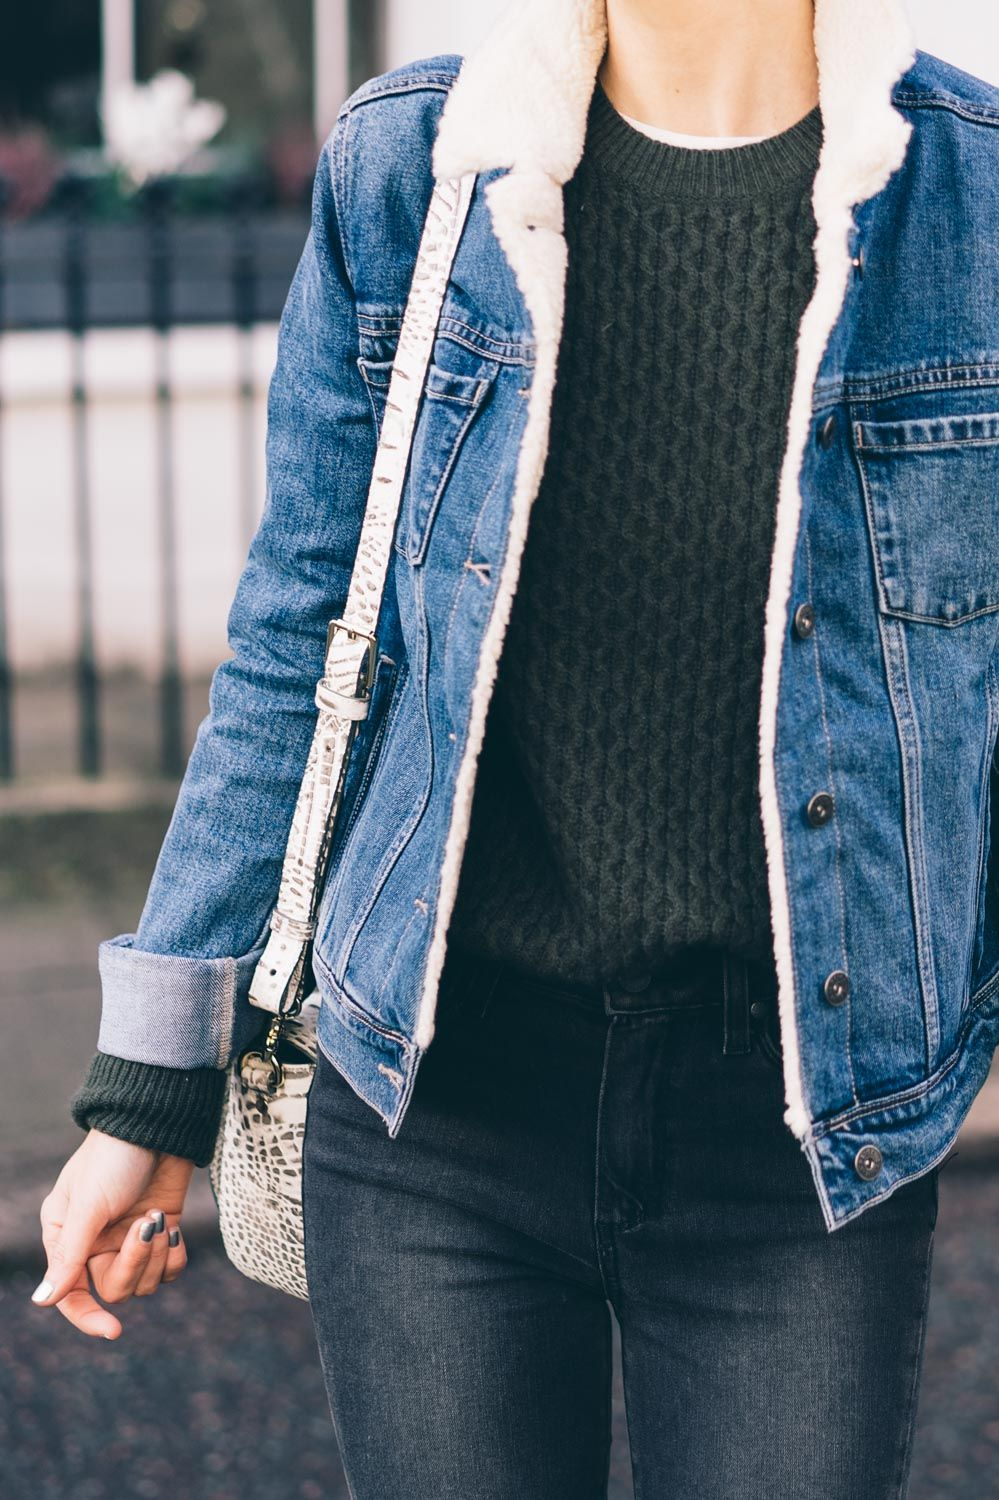 The Perfect Outerwear For Exploring Notting Hill This Shearling Lined Jean Jacket From Paige Is A Winner Jean Jacket Outfits Fashion Sherpa Lined Denim Jacket [ 1500 x 999 Pixel ]